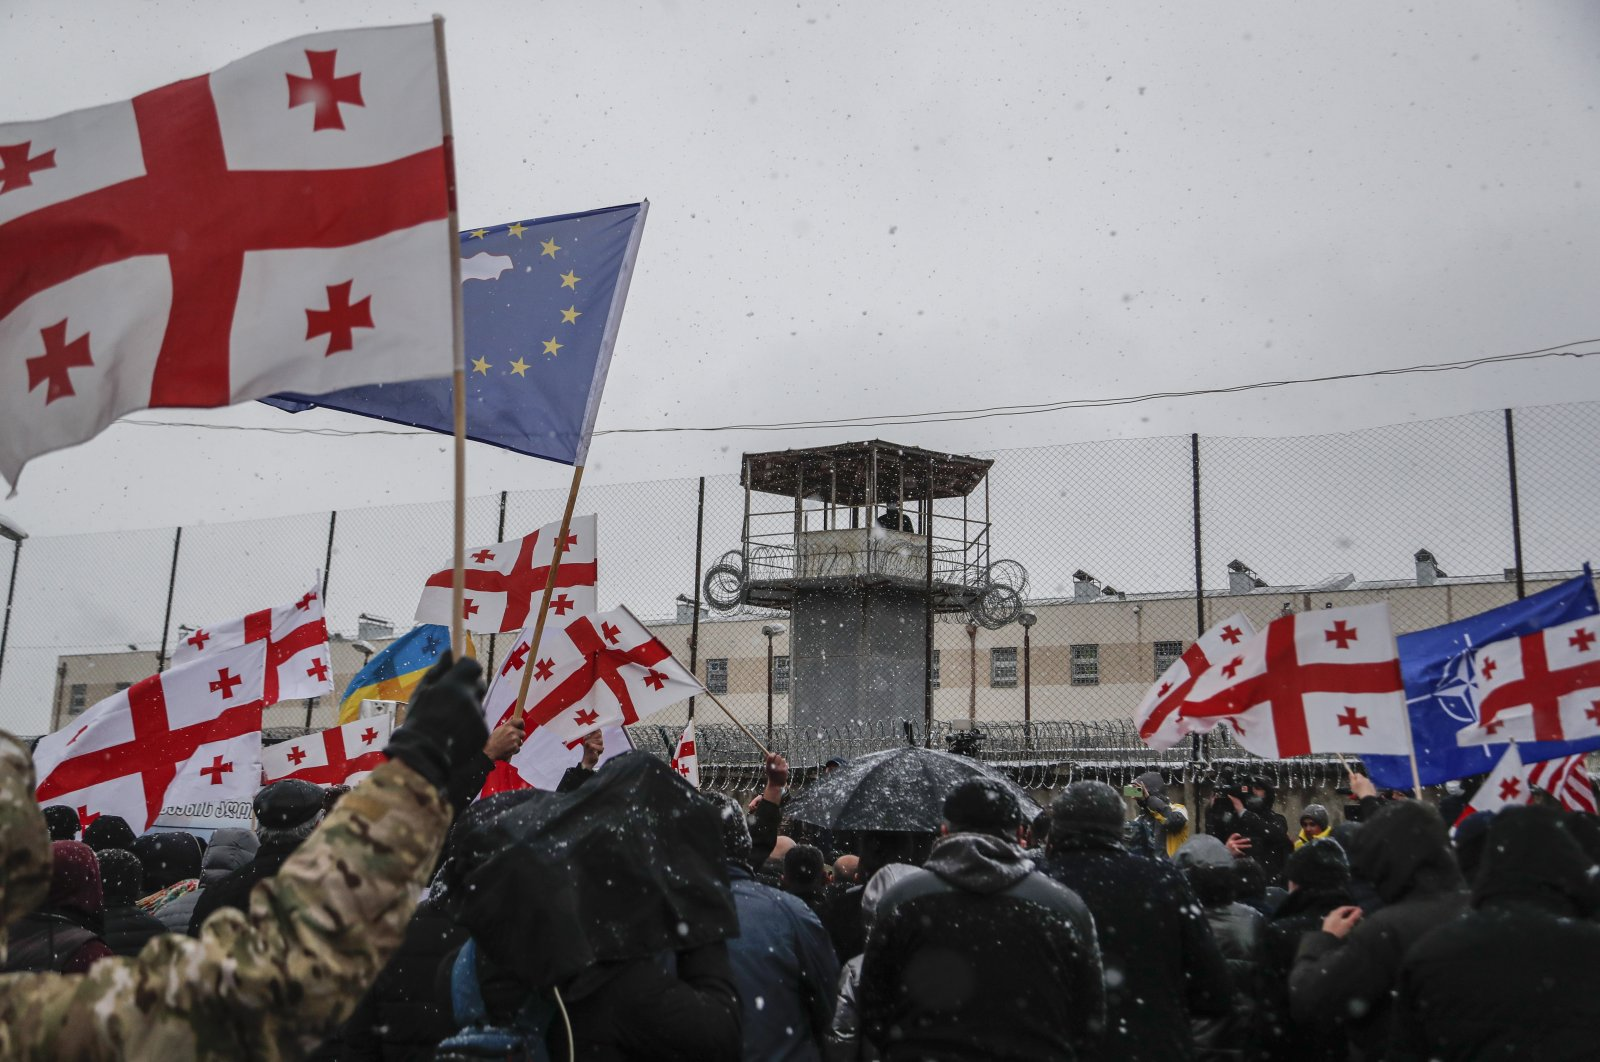 People protest during a rally in support of Georgian opposition leader Nika Melia in front of a prison in Rustavi, about 20 kilometers (12.4 miles) from Tbilisi, Georgia, Feb. 24, 2021. (EPA Photo)